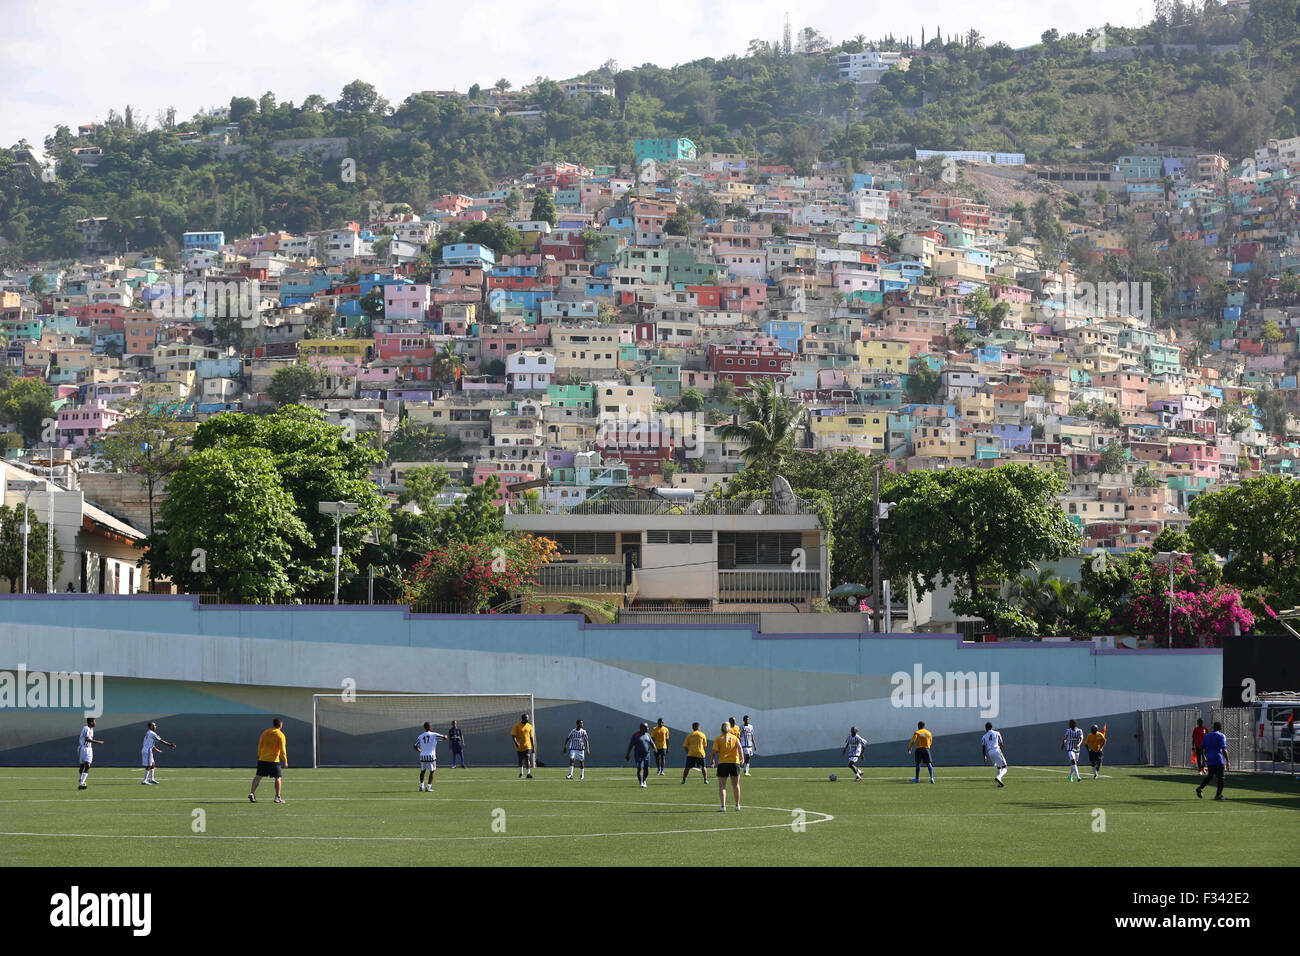 Adults play soccer at the Park Sainte Therese soccer field with colorful homes along the hillside September 15, - Stock Image